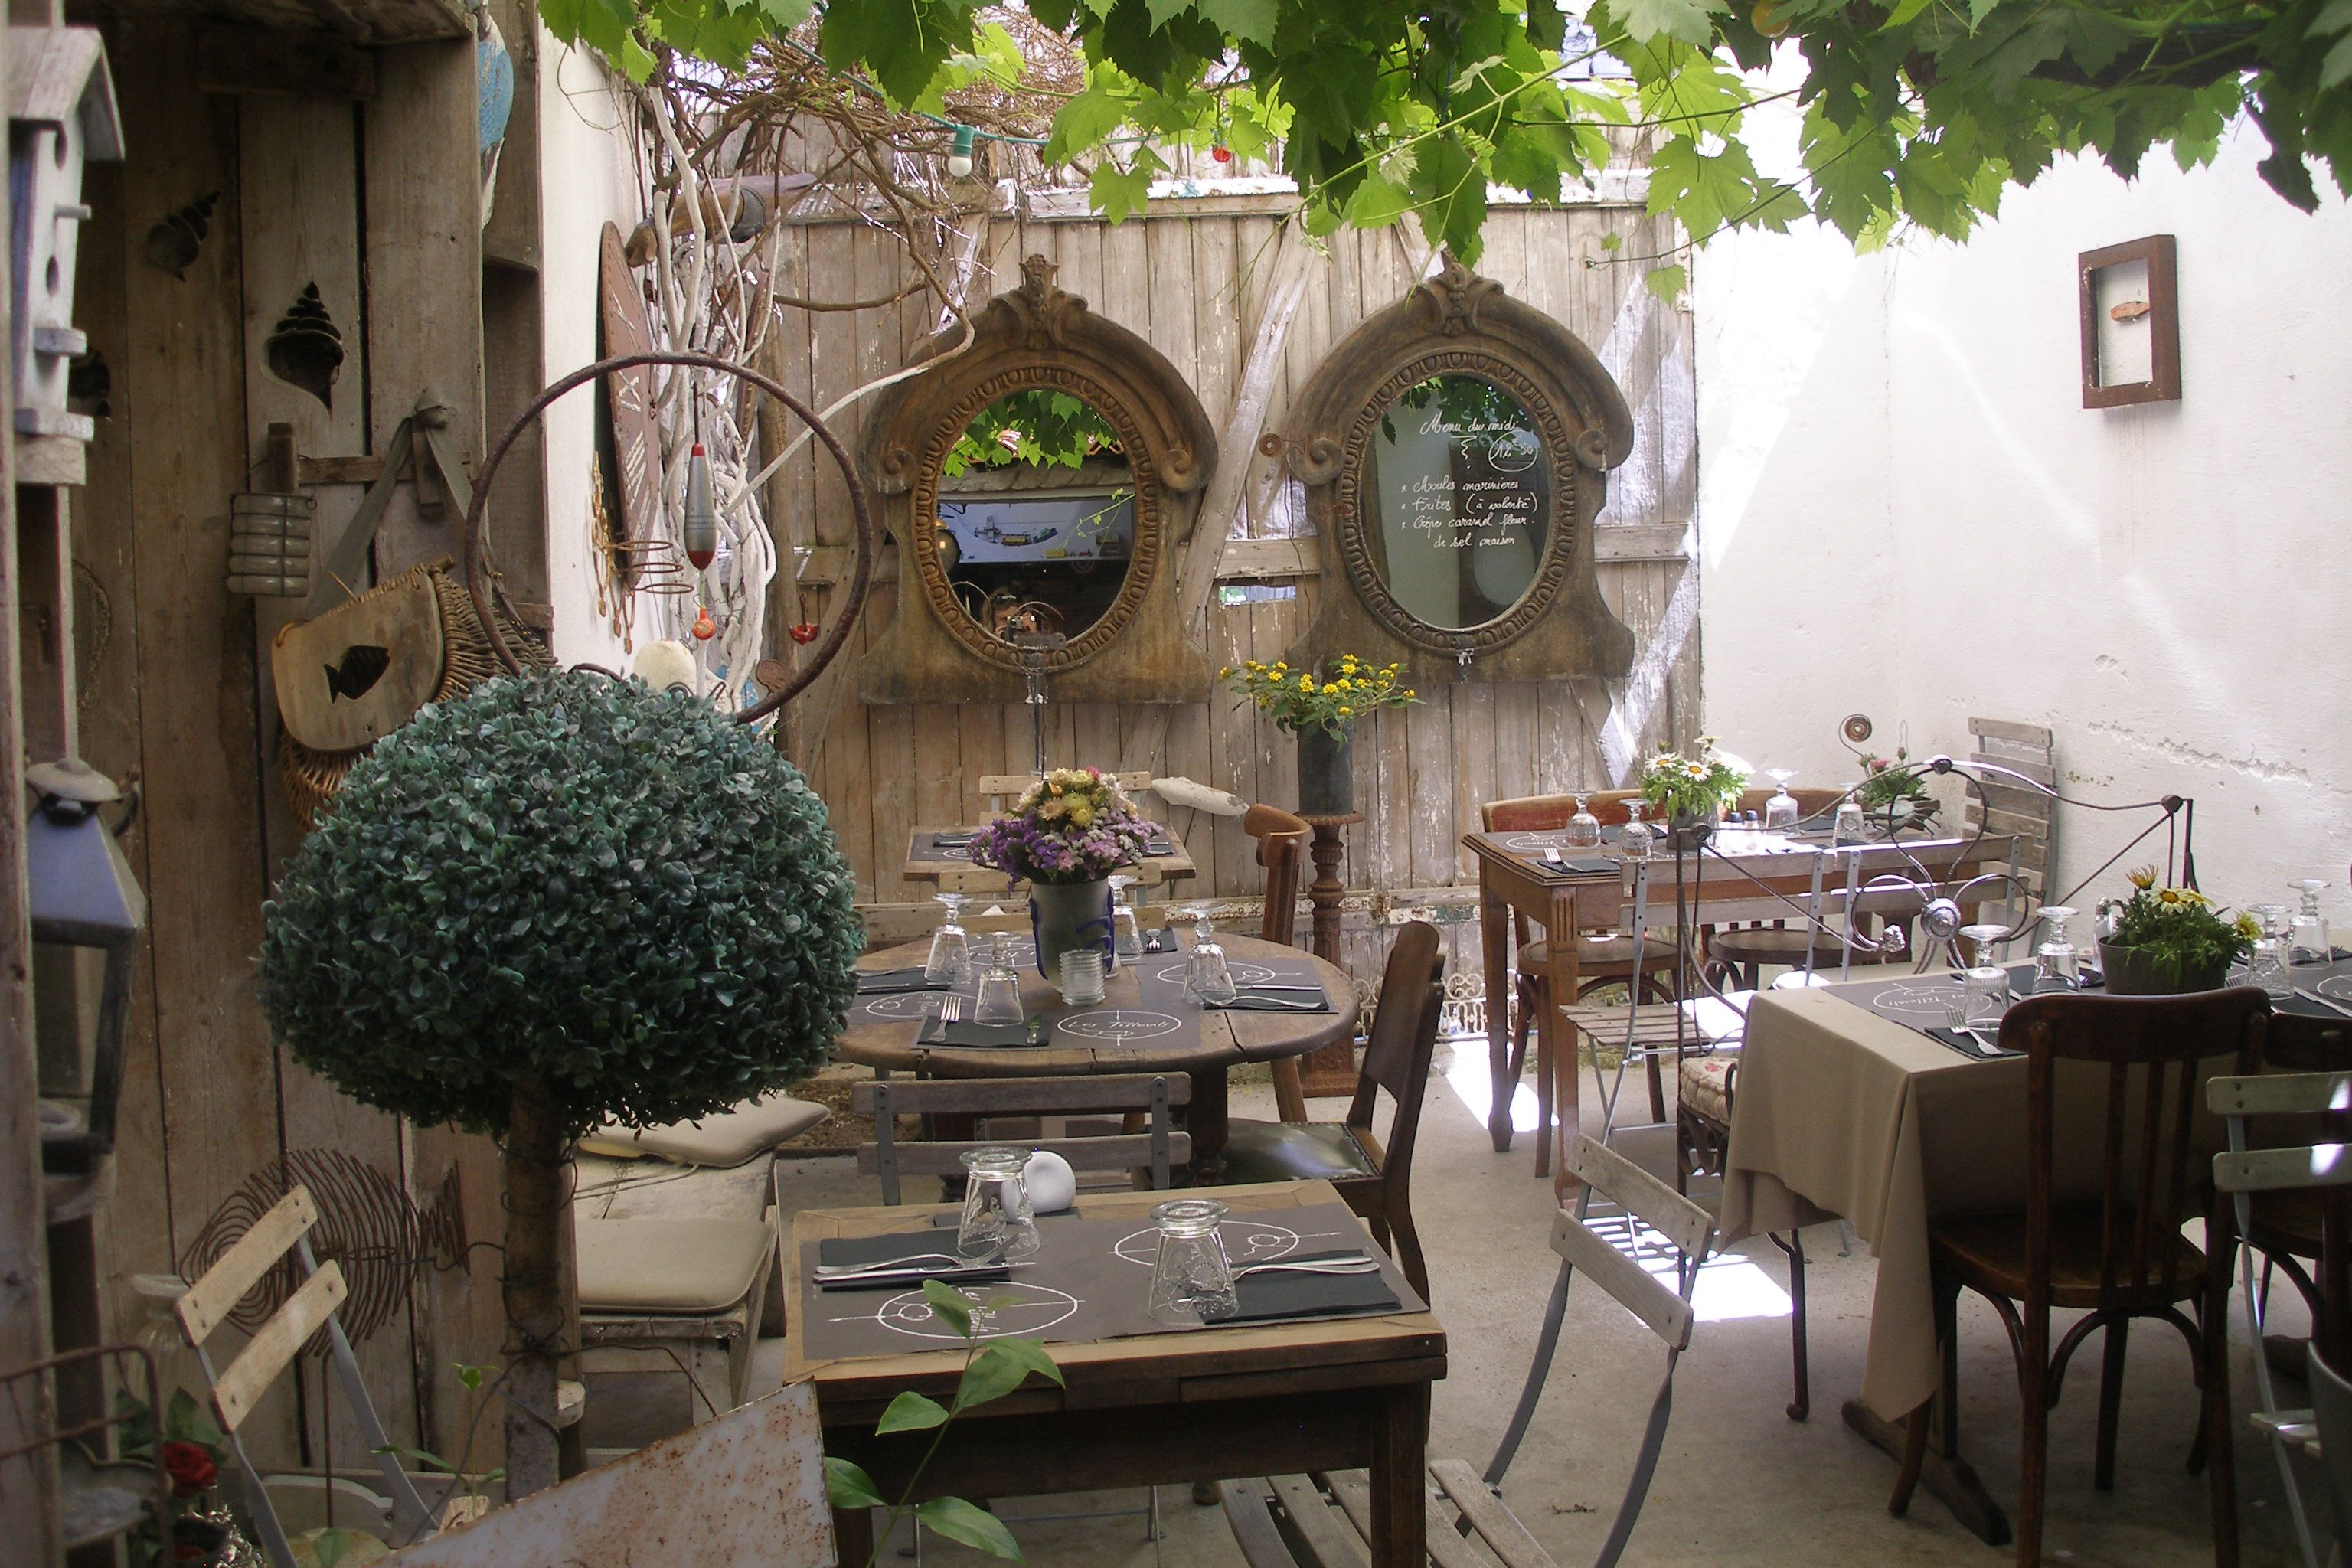 Les tilleuls ile de r france cafes to linger in pinterest cafes re - Decoration ile de re ...